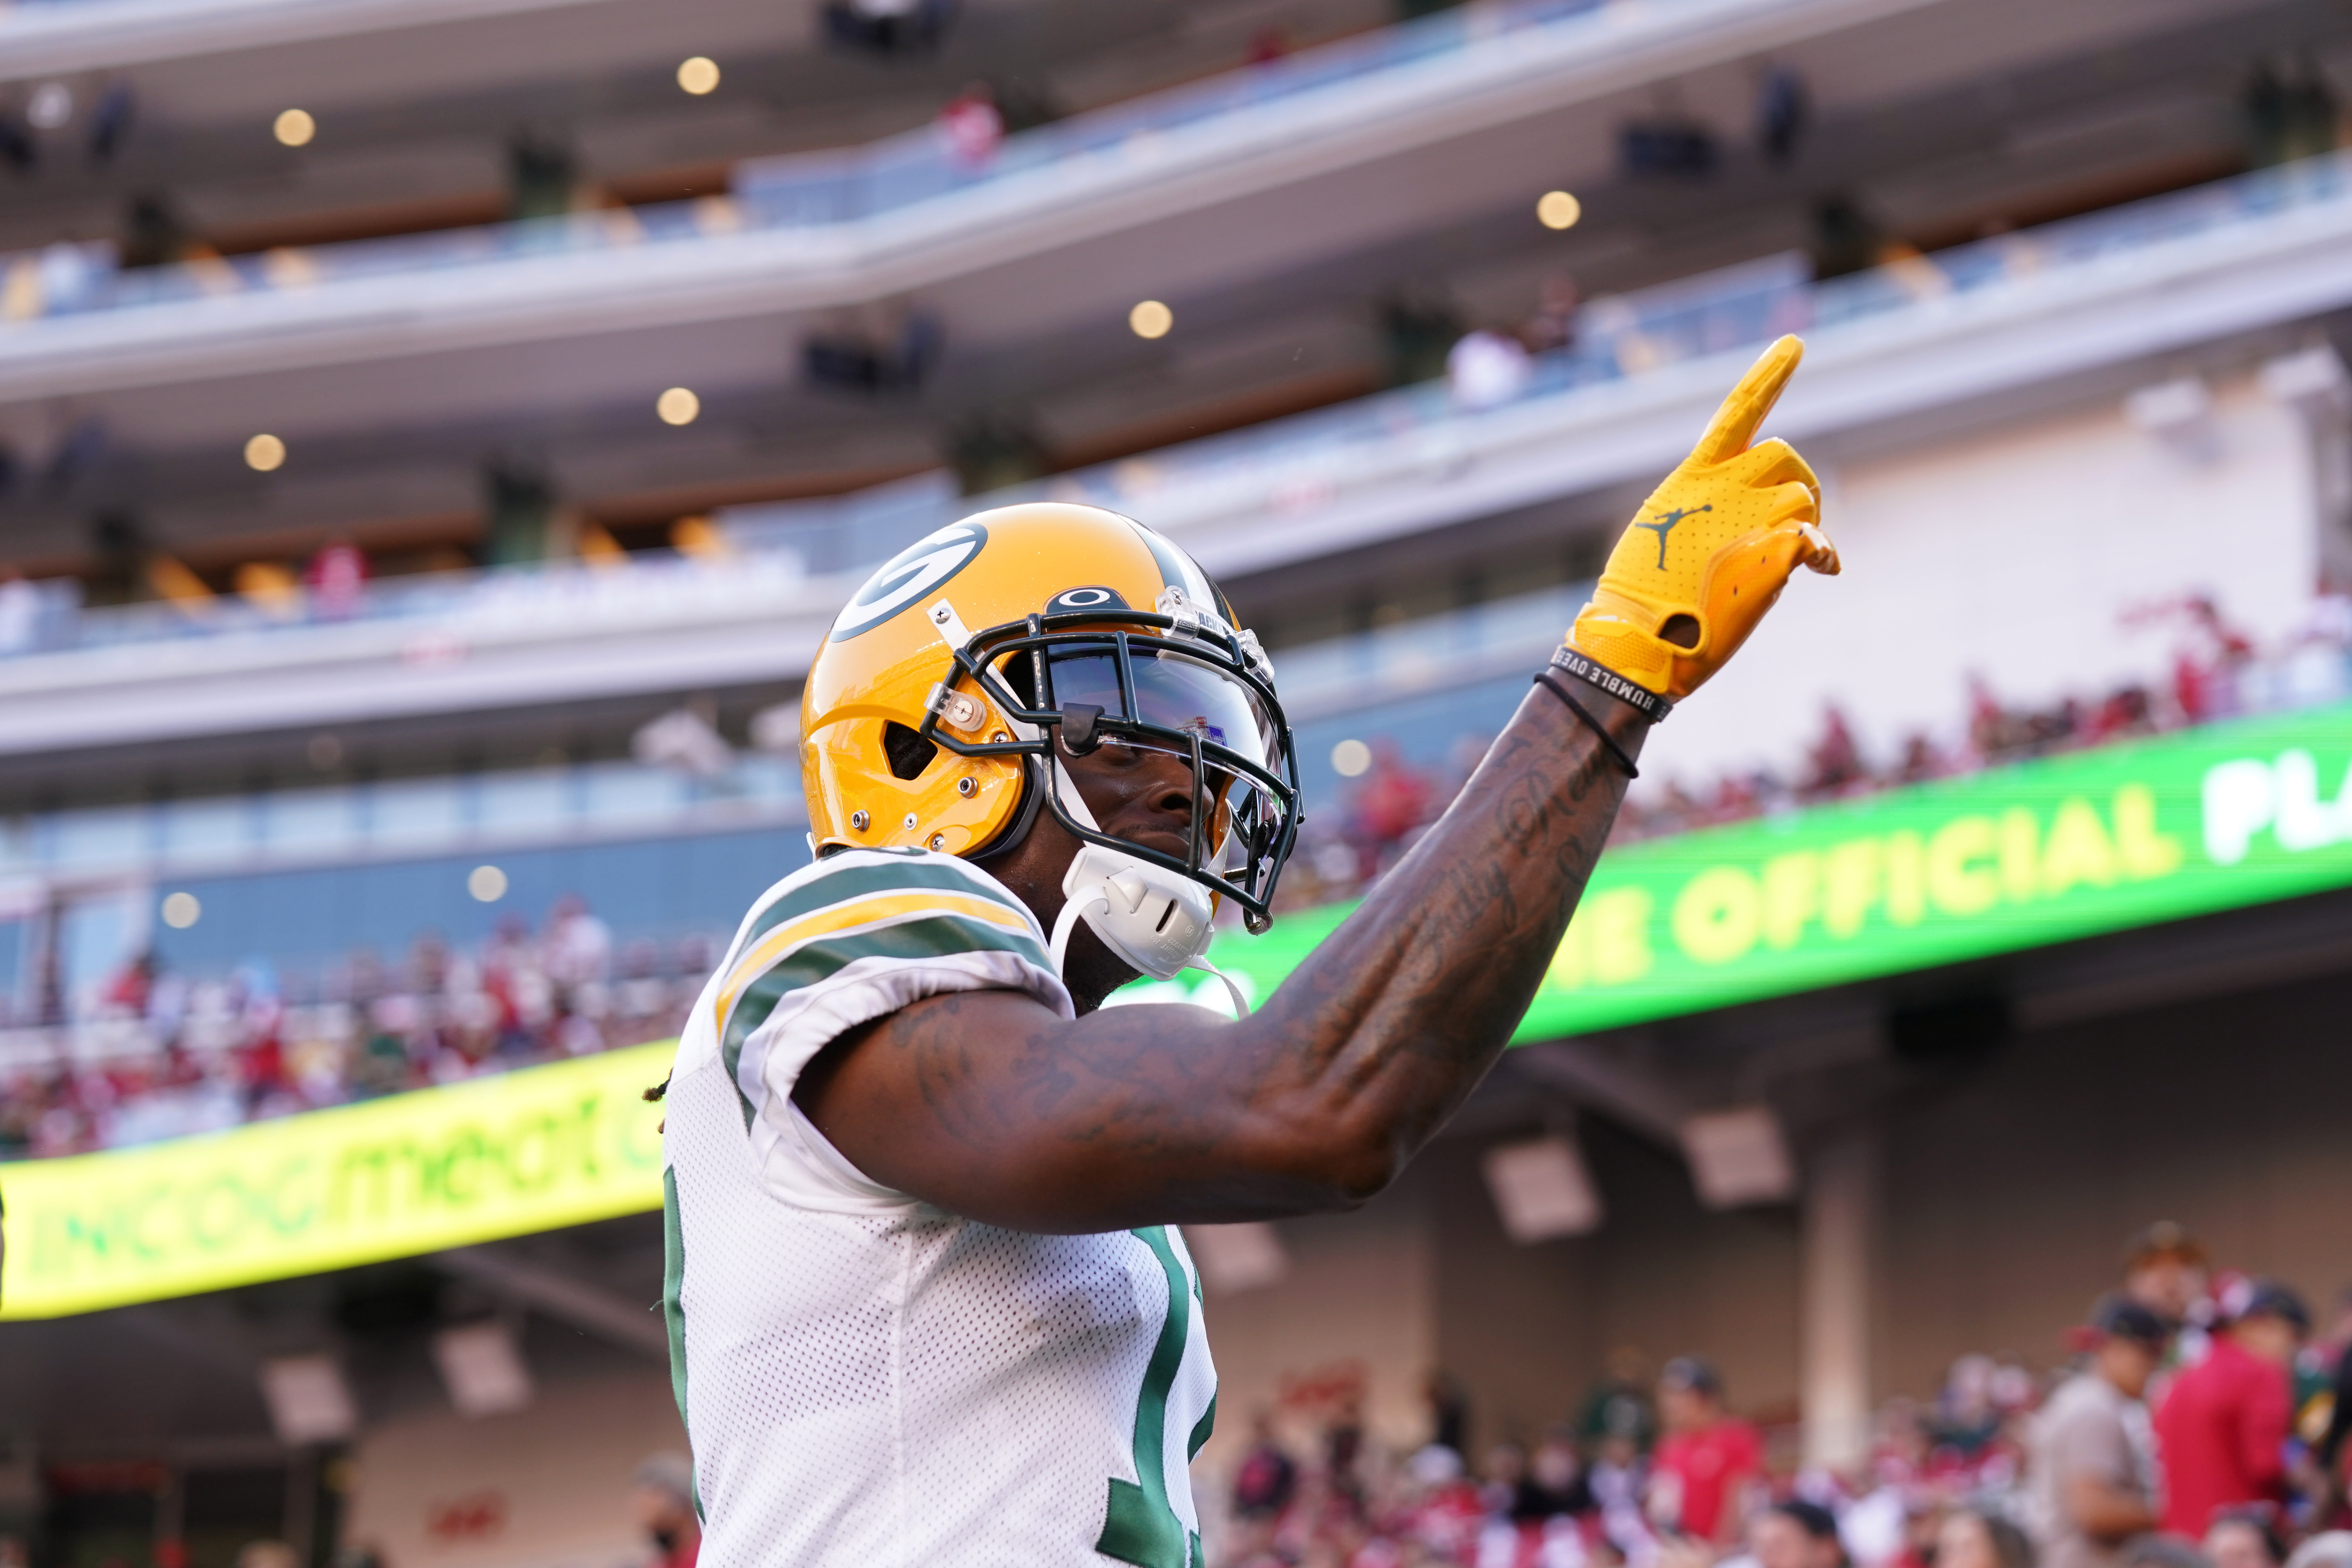 Green Bay Packers wide receiver Davante Adams (17) points towards the crowd before the start of the game against the San Francisco 49ers at Levi's Stadium.